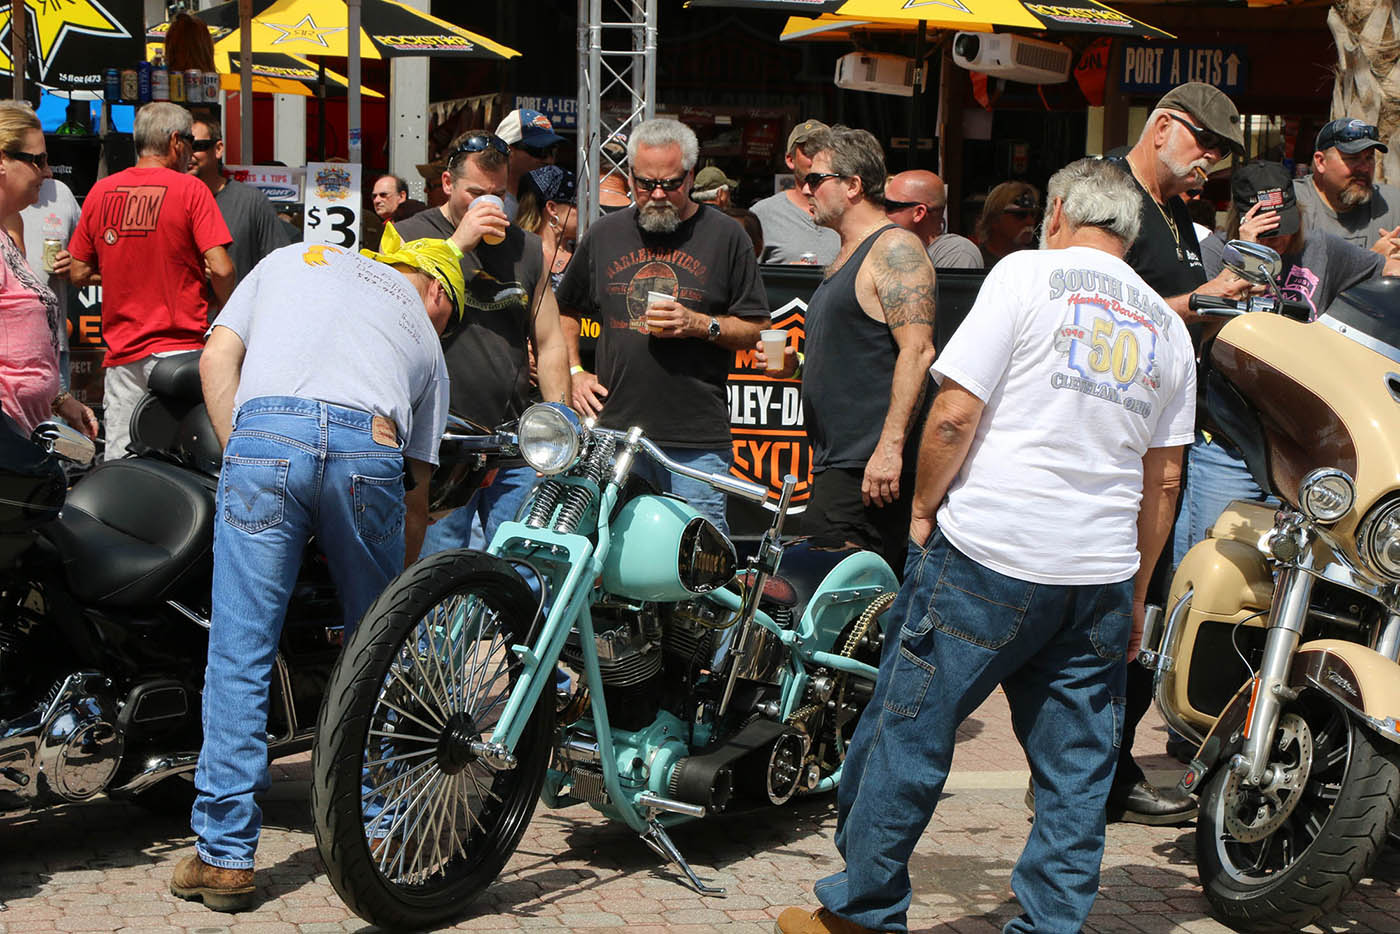 Biker soak up the final hours of  Bike Week 2016 on Main Street after a week of perfect weather and record crowds Saturday March 12, 2016. News-Journal/JIM TILLER